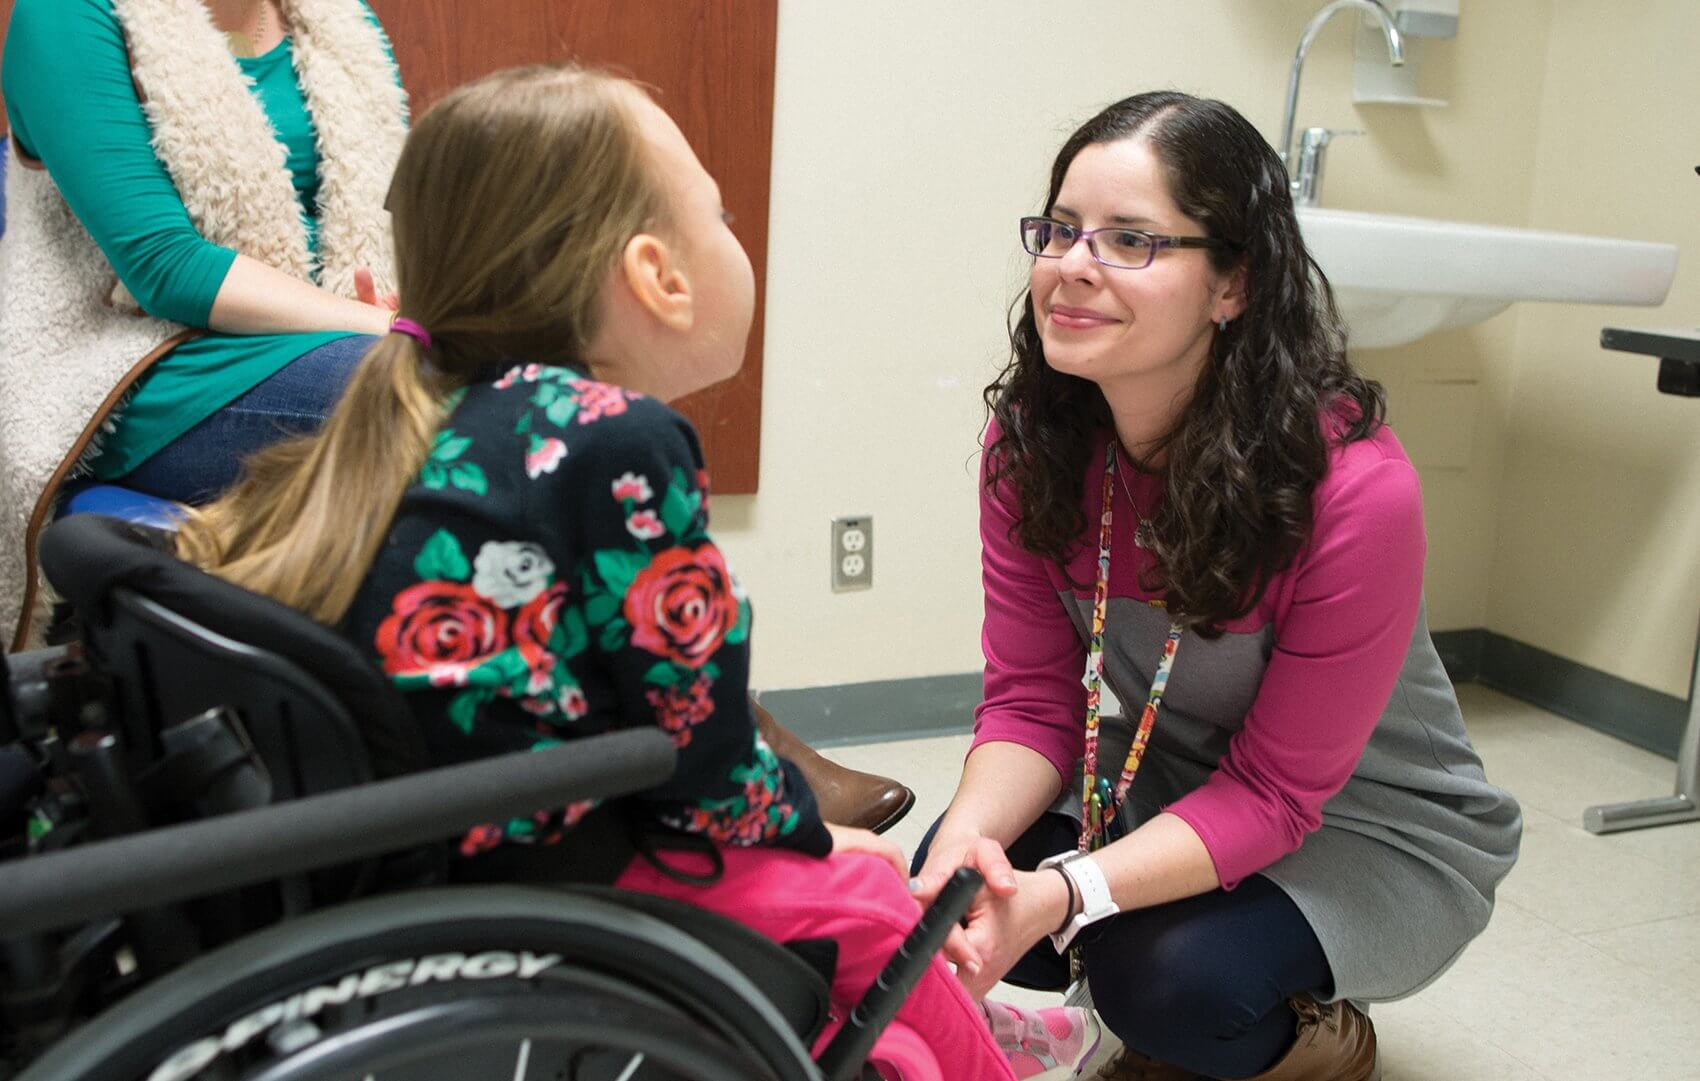 Glendaliz Bosques, M.D., works with one of her therapy patients at TIRR Memorial Hermann.